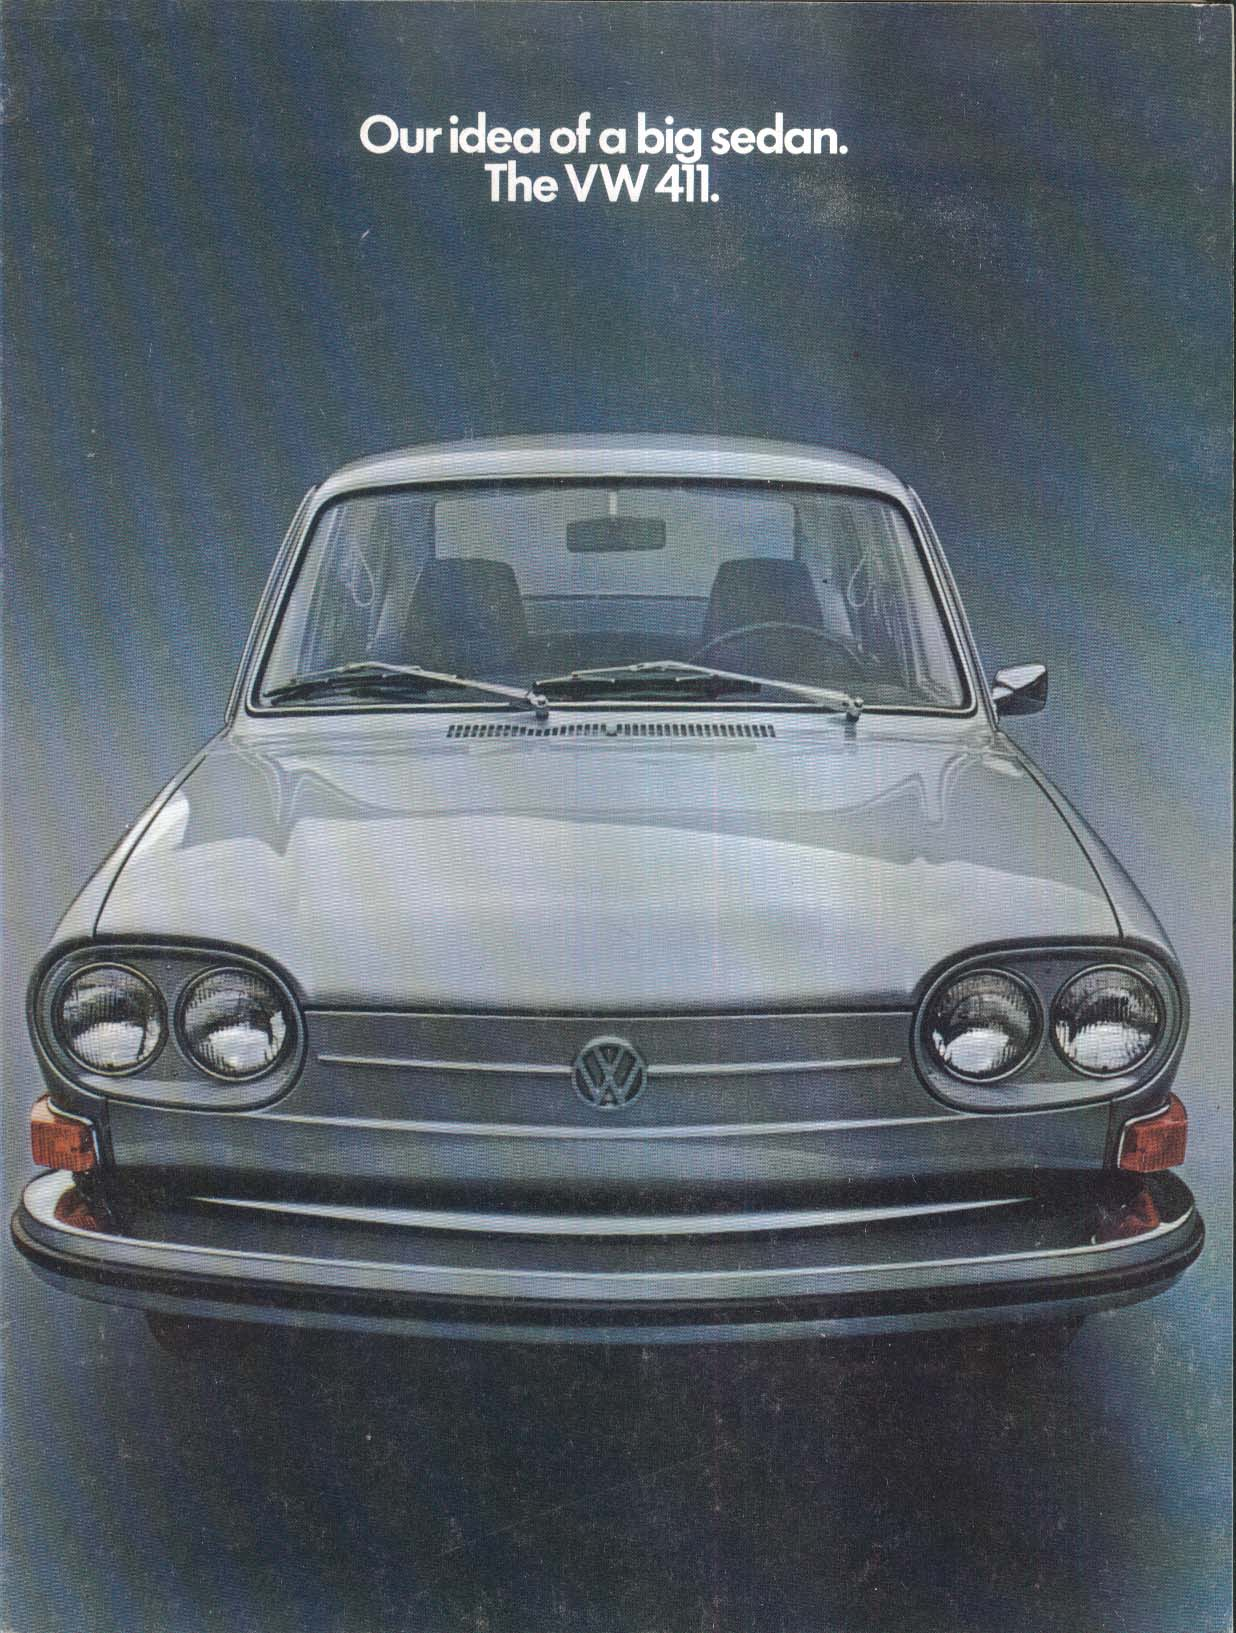 1970 Volkswagen 411 Sedan sales brochure